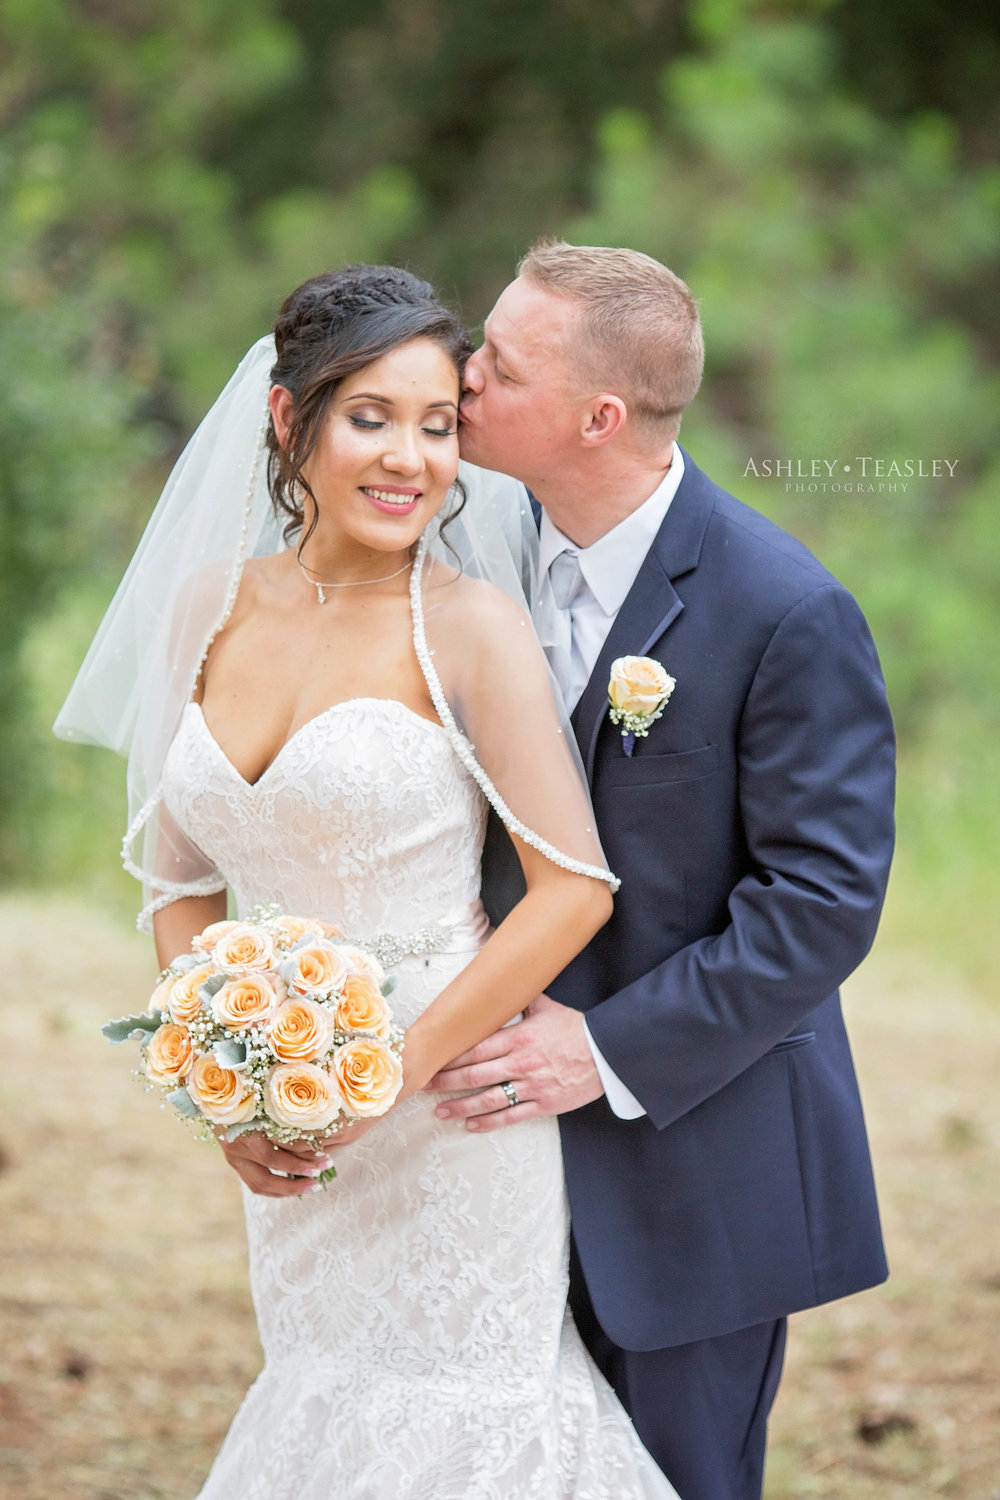 Ashley Teasley Photography- Sacramento Wedding Photographer- Bella Grace Winery 32.jpg